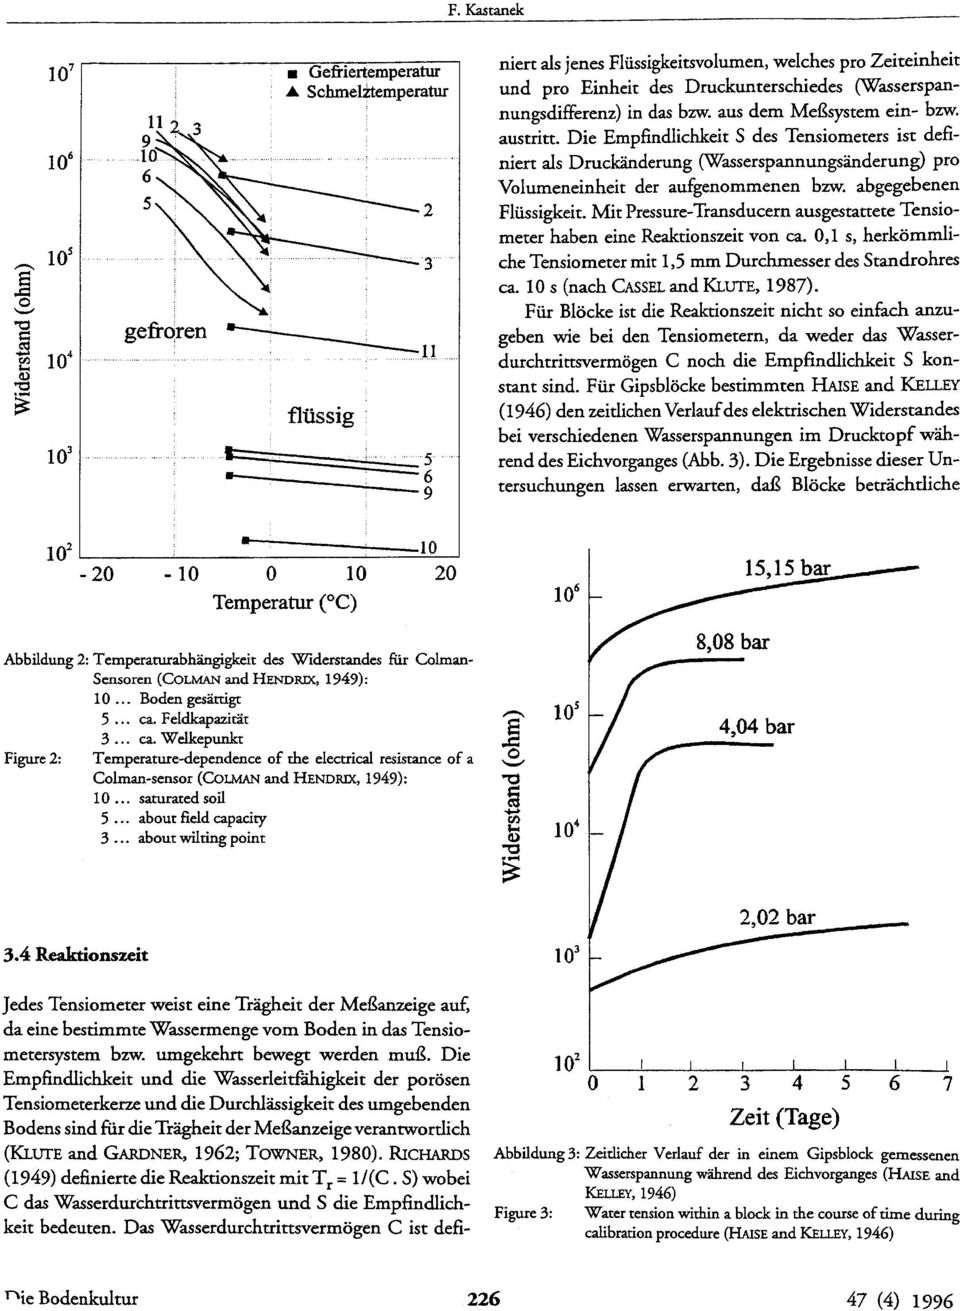 Welkepunkt Figure 2: Temperature-dependence of the eleetrical resistance of a Colman-sensor (CoLMAN and HENDRX, 1949): 1 sarurated soil 5 aboutfield capaciry 3 about wilting point 2 3 1 2 niert als